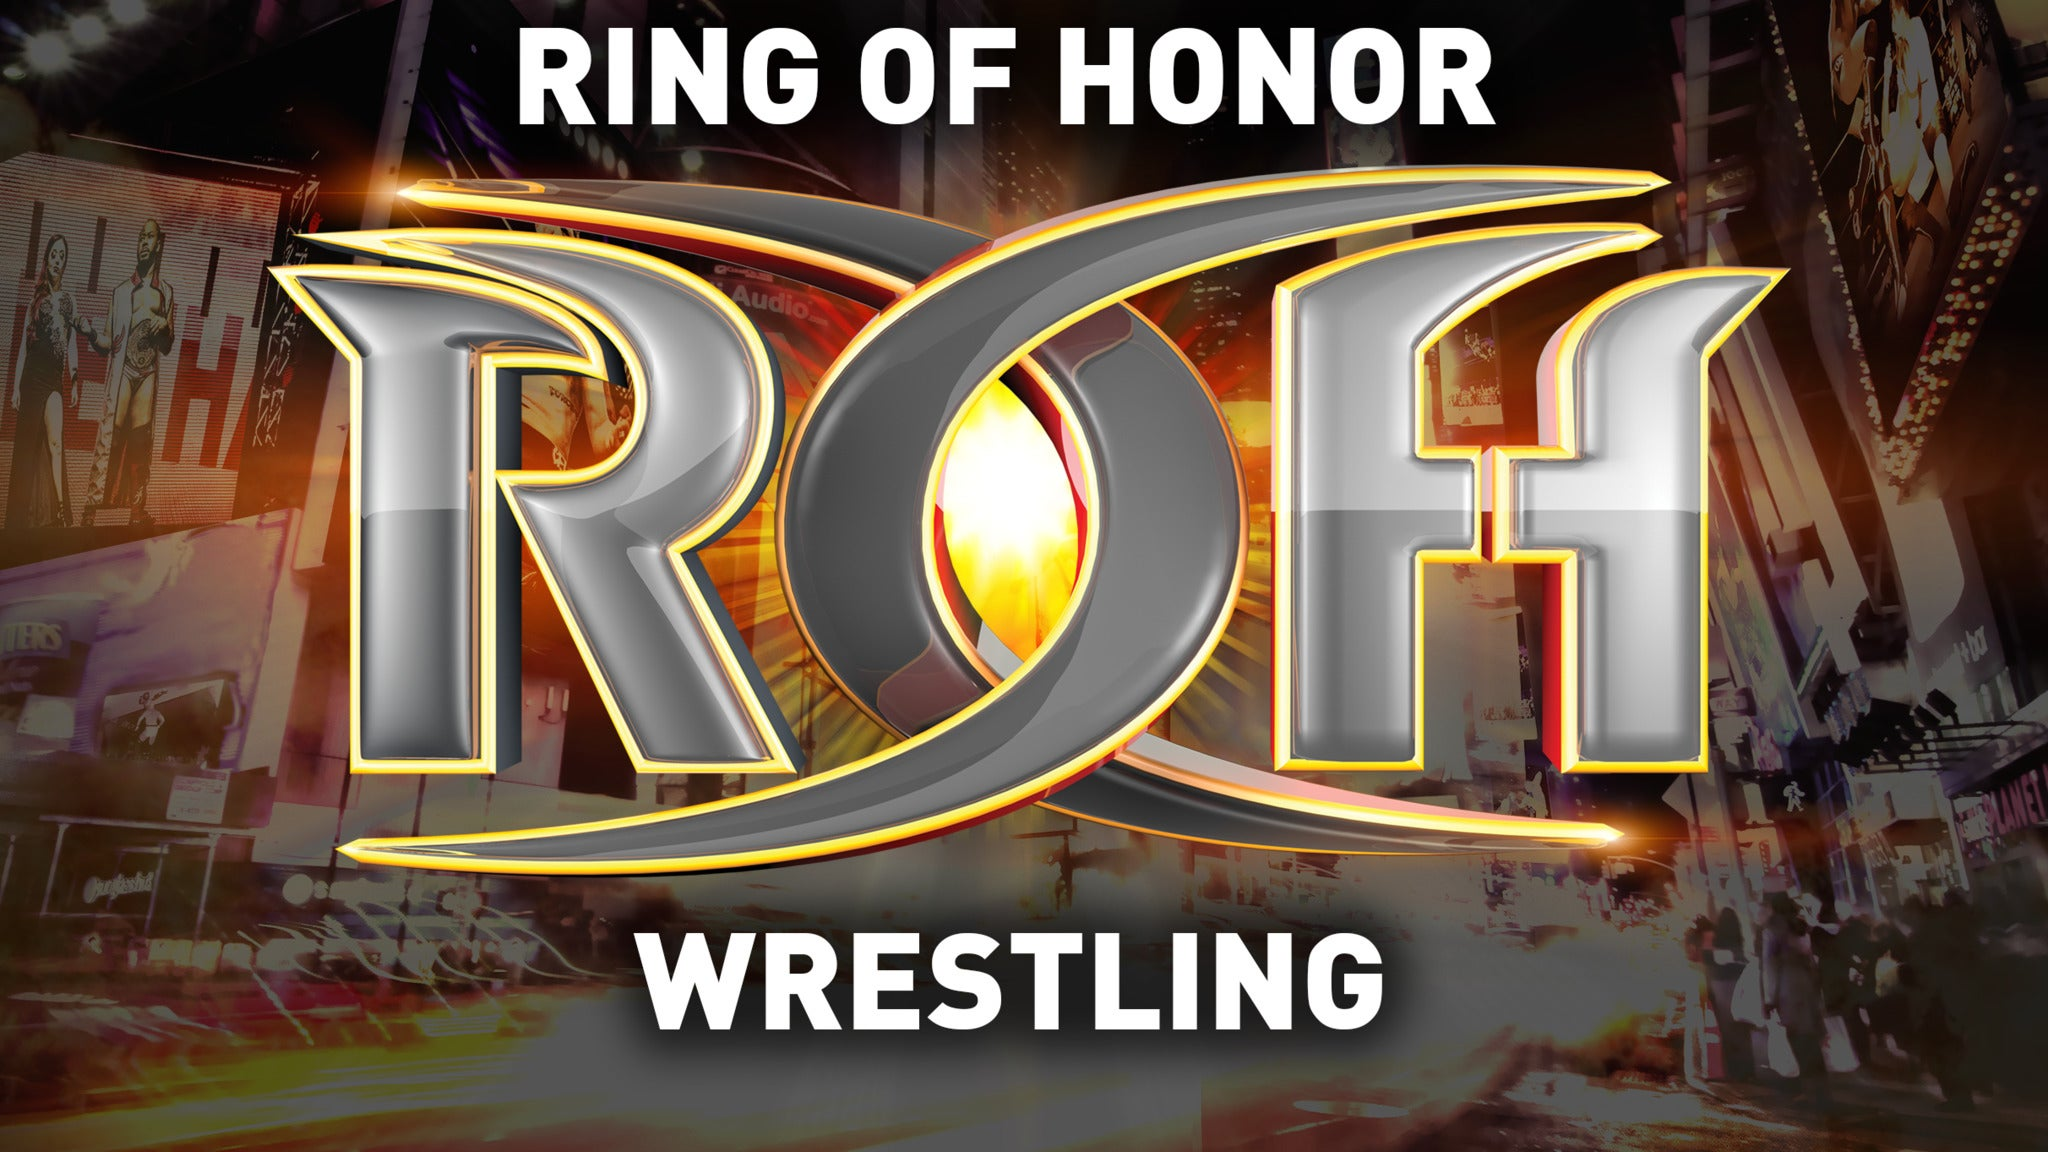 SORRY, THIS EVENT IS NO LONGER ACTIVE<br>Ring of Honor Wrestling at War Memorial Auditorium - Ft Lauderdale, FL 33304